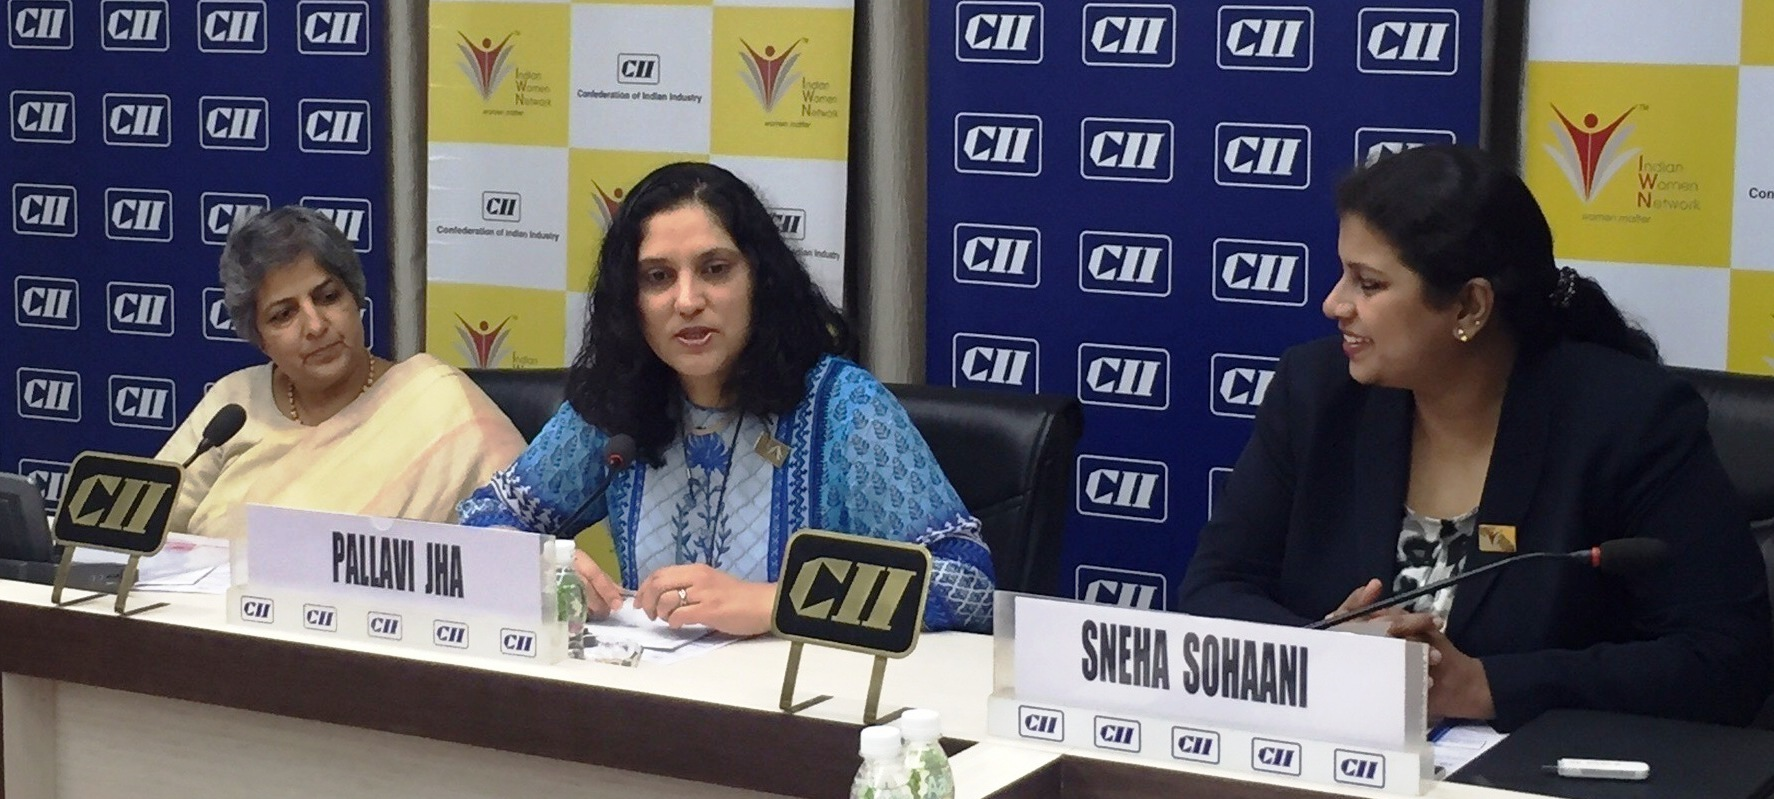 CII IWN Gujarat Chapter Session on 'Engaging Women at Workplace'